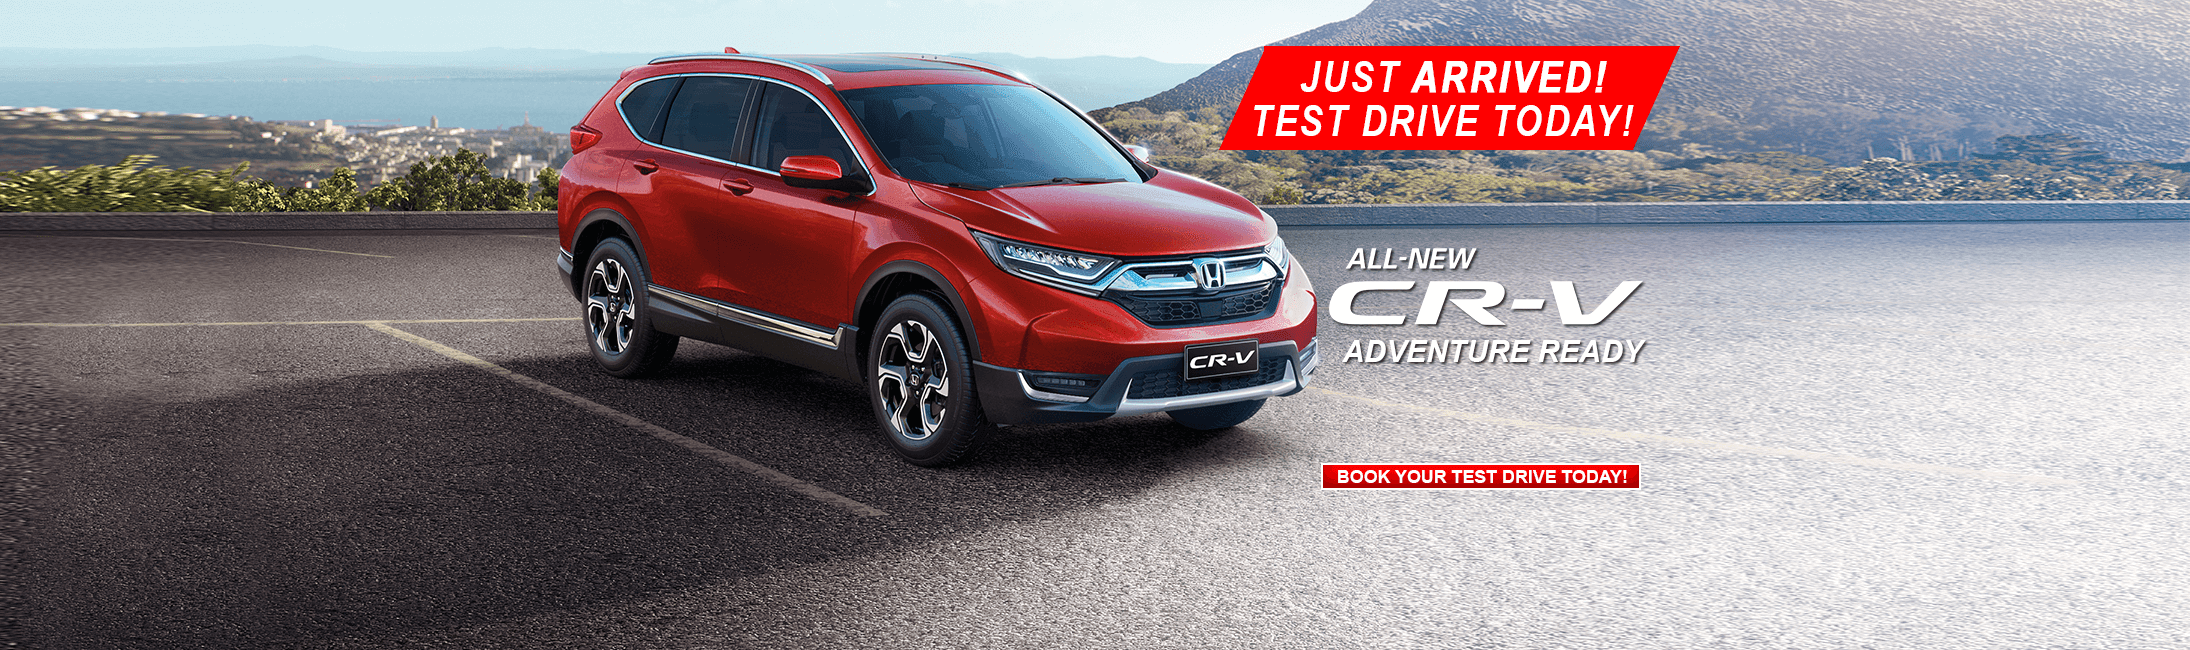 All New Honda CRV Is Here